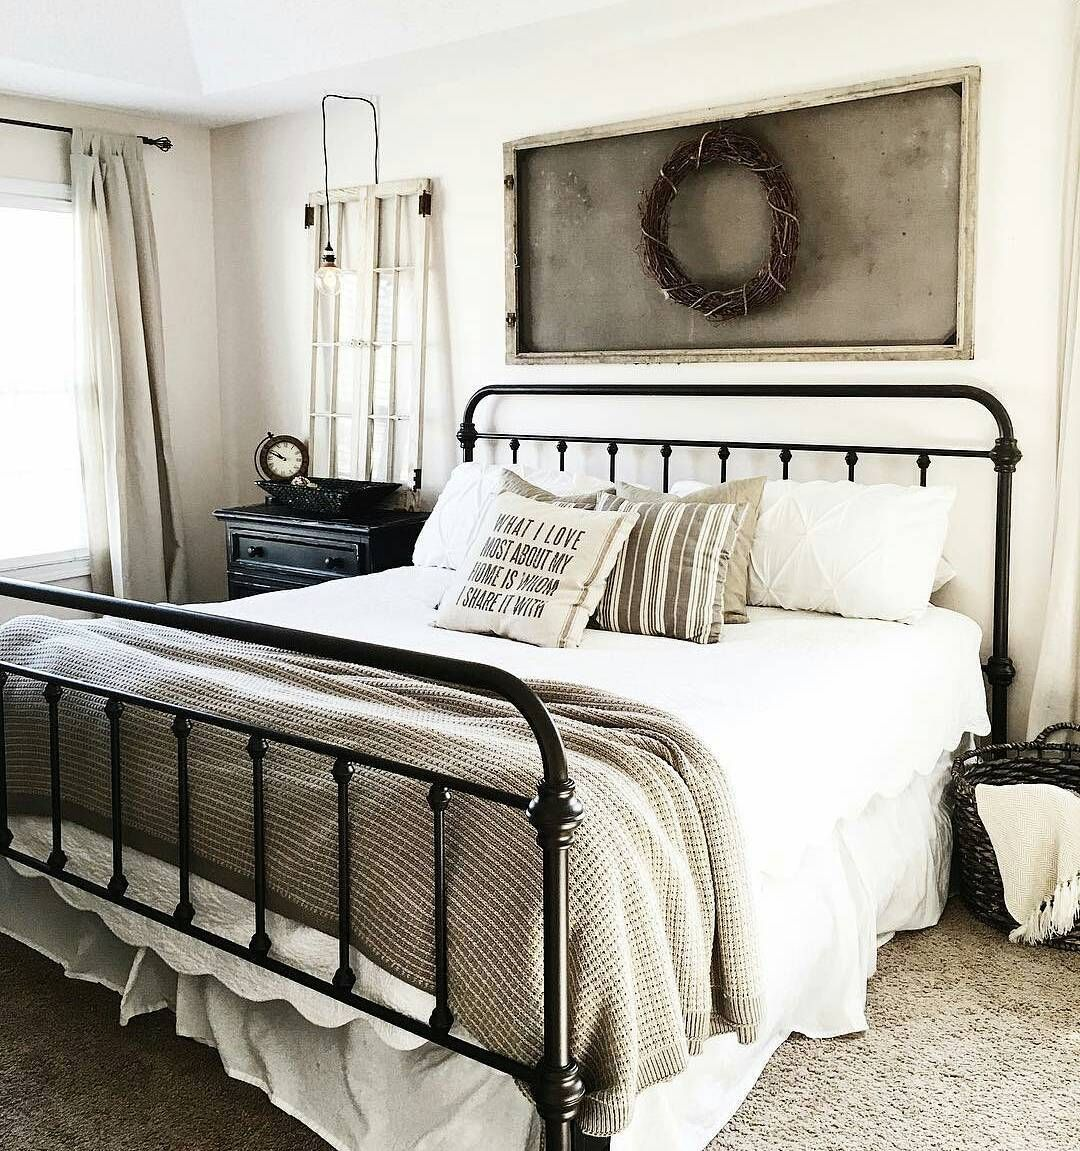 Coolbedroomdecor Farmhouse Bedding Sets Bedrooms Blankets Vintage Bedroom Furniture